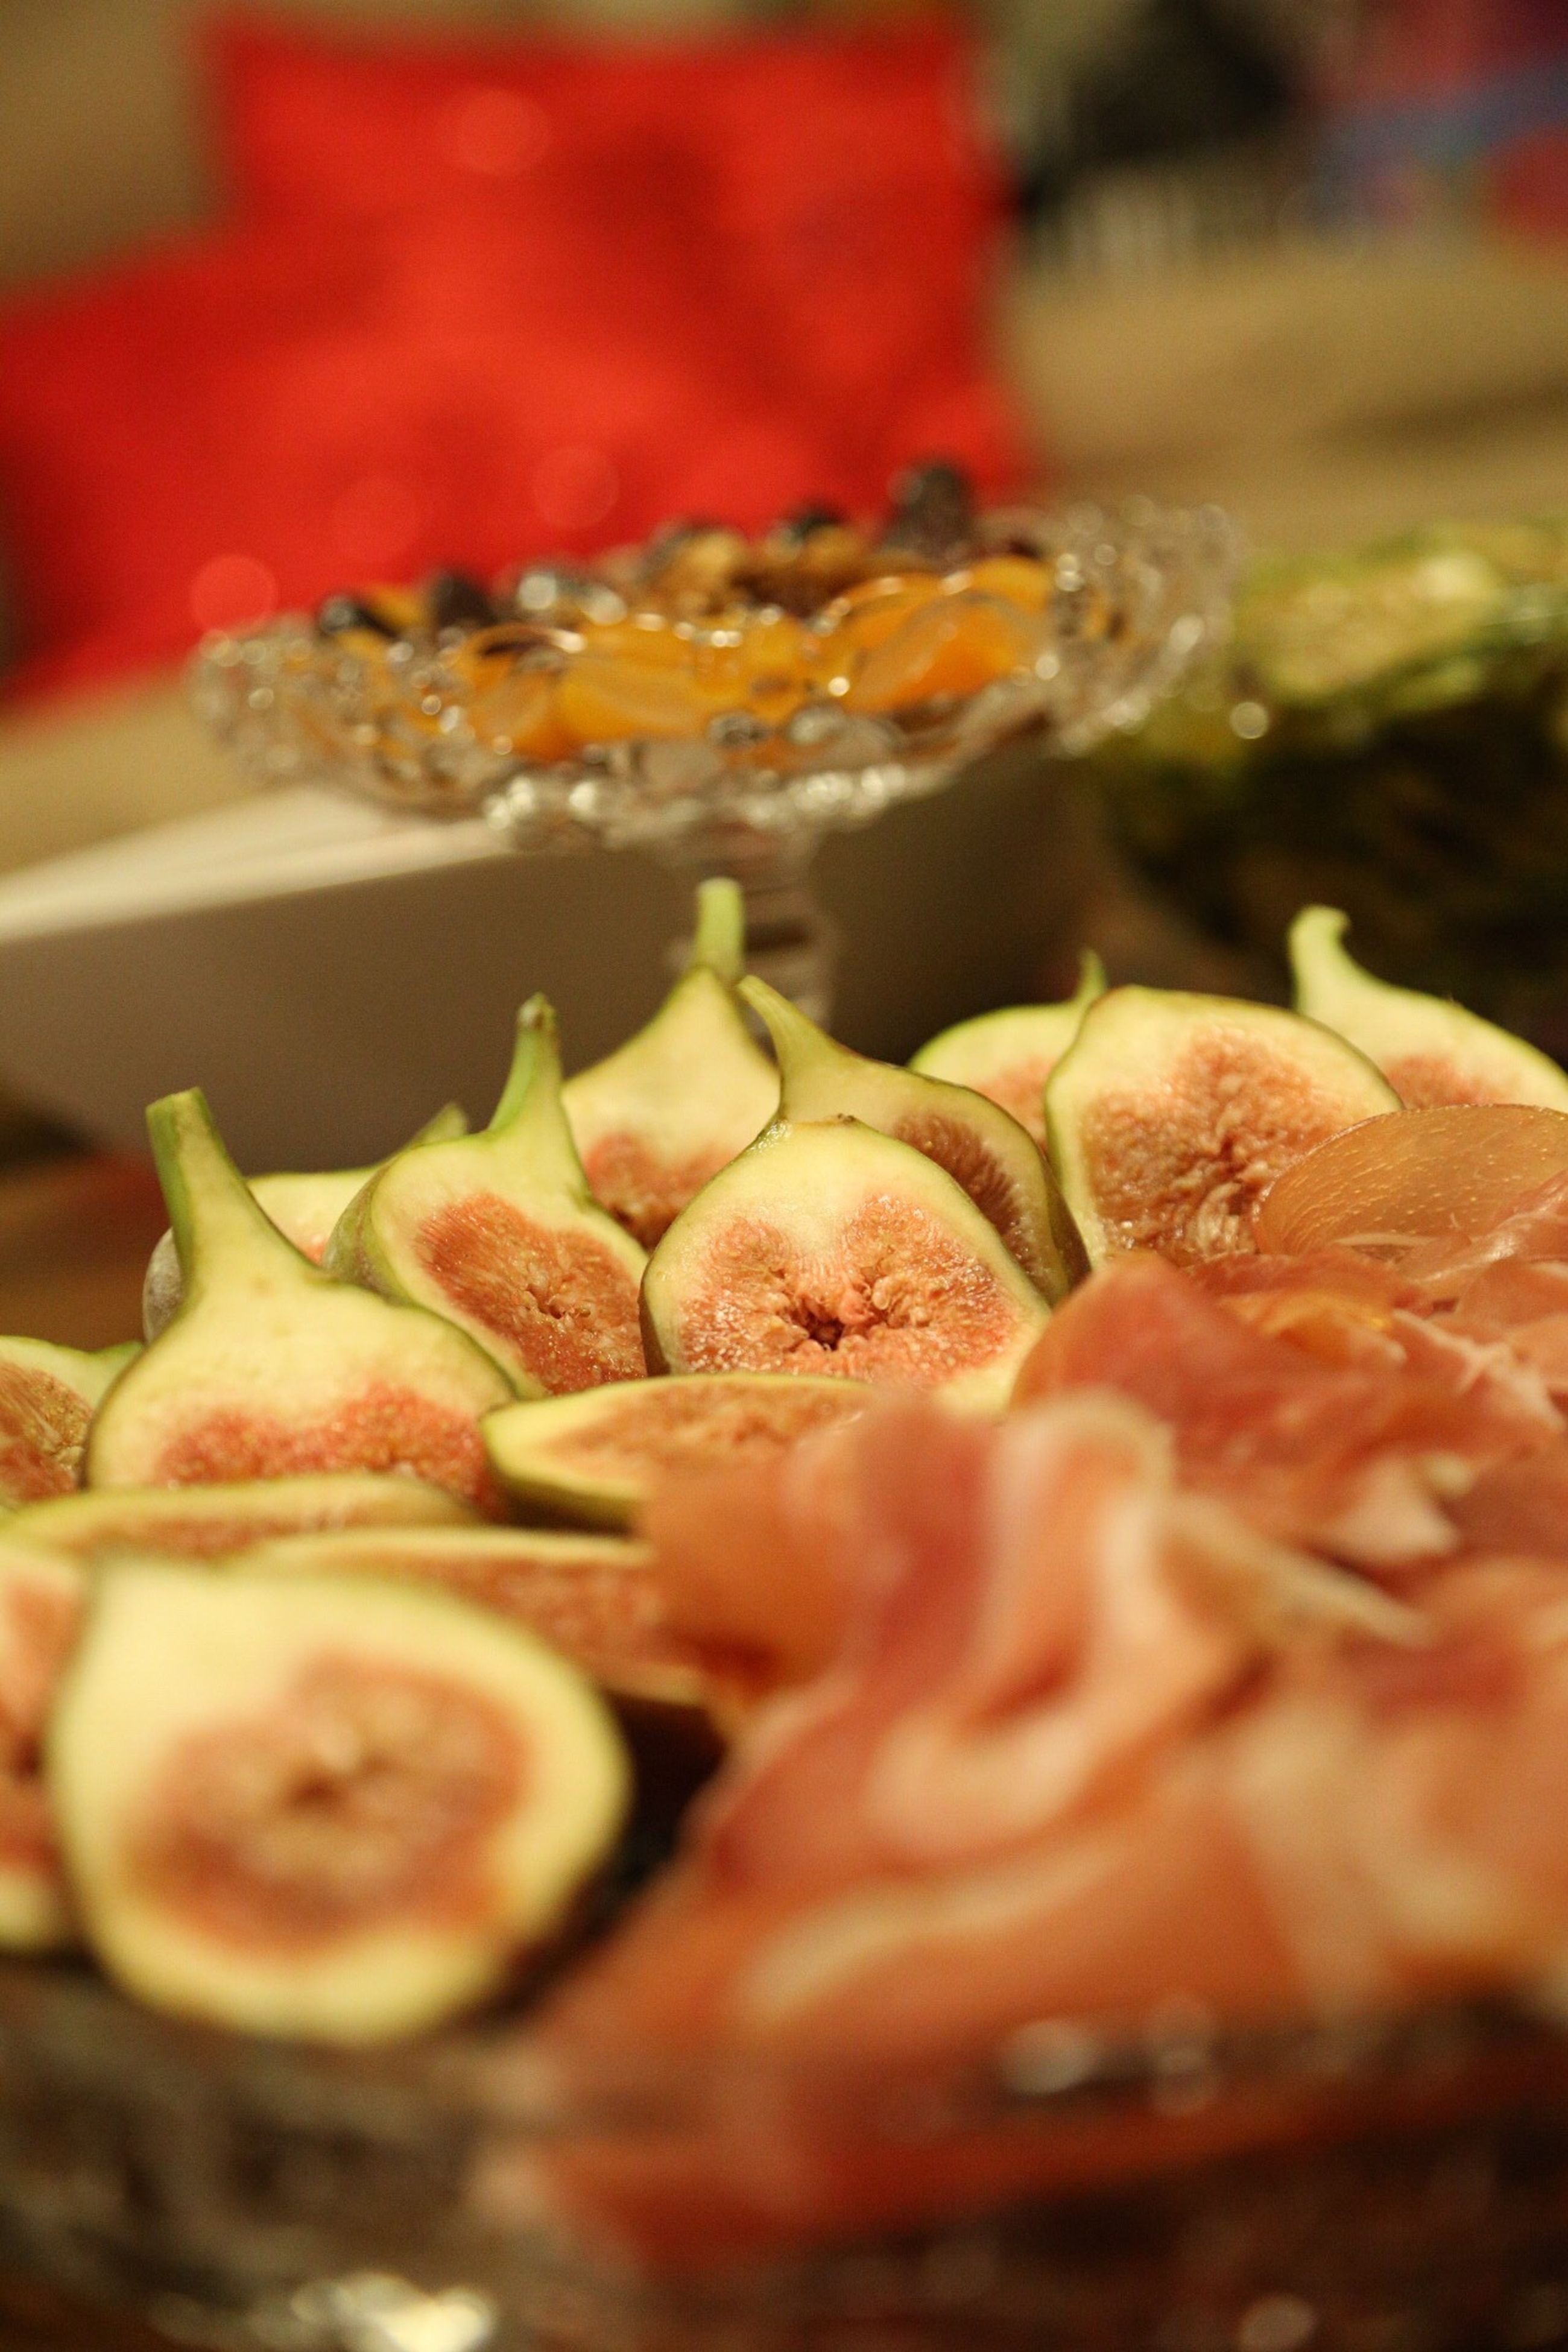 freshness, food, indoors, close-up, food and drink, no people, ready-to-eat, day